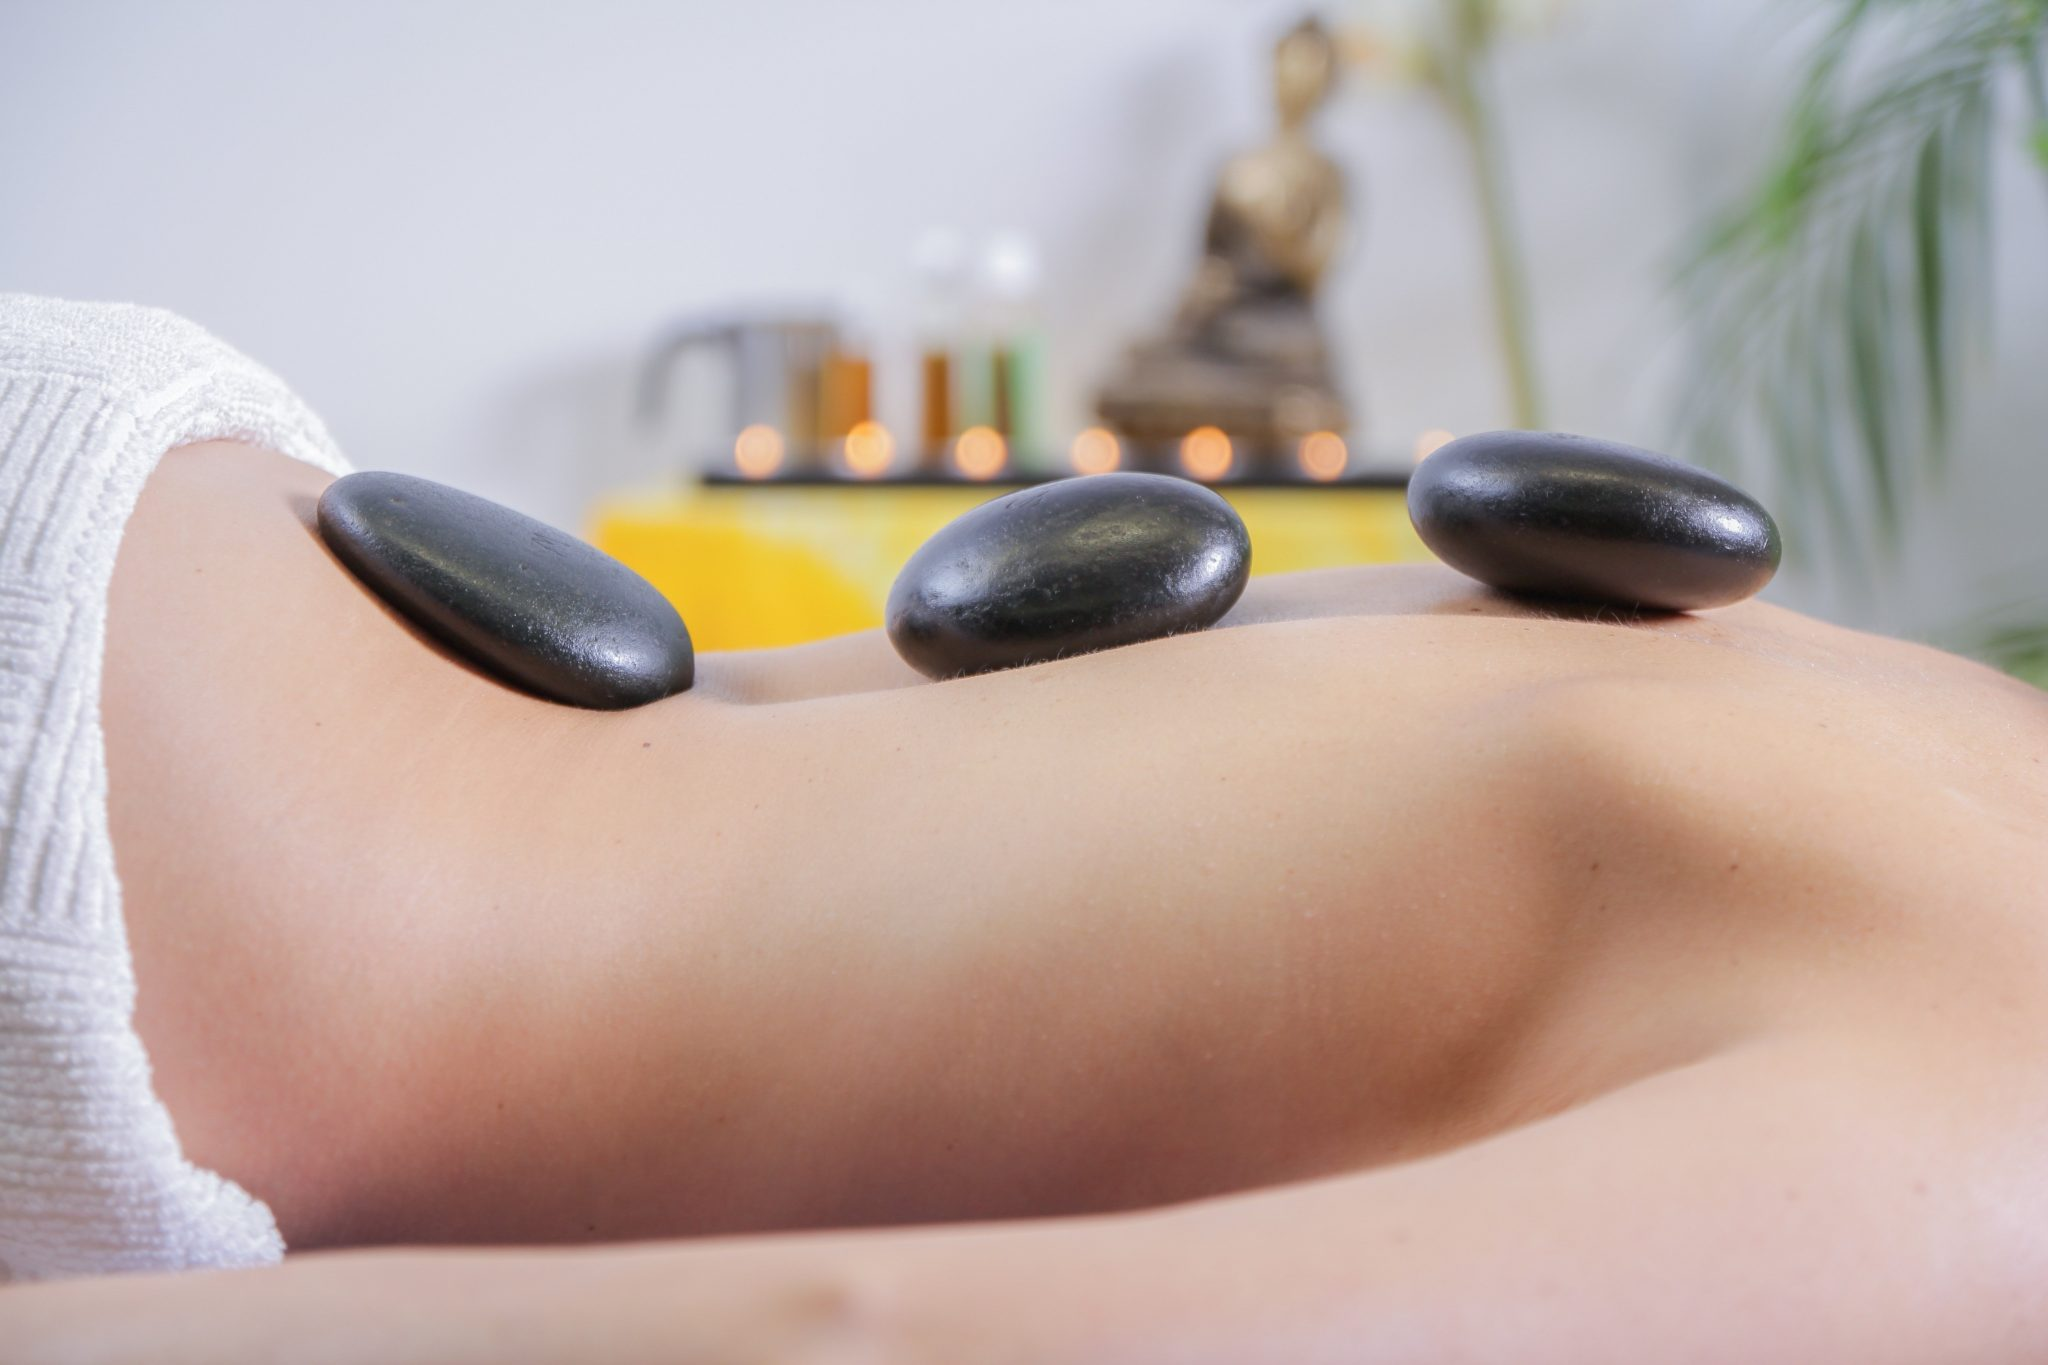 Hot Stone Massage | Massagetechniken | Vital Massage | www.vitalmassage.at